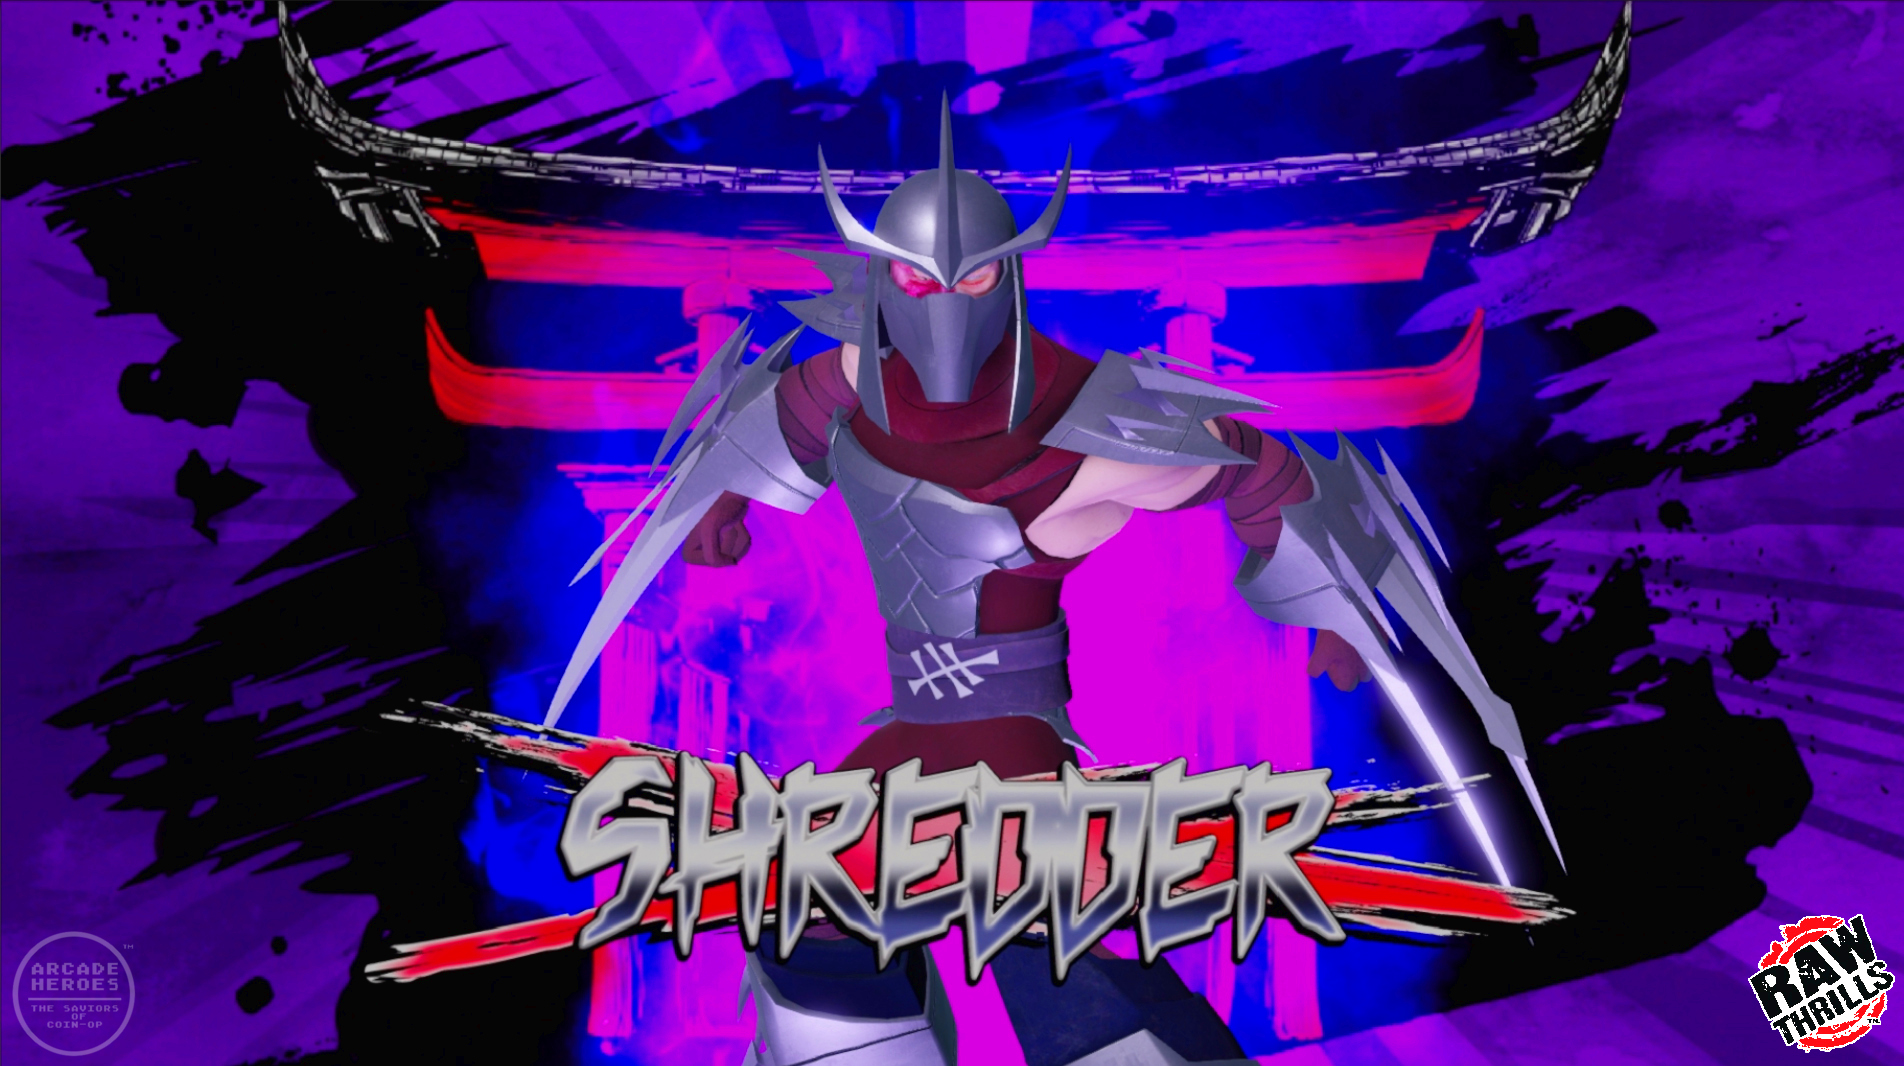 Shredder splash screen, TMNT arcade